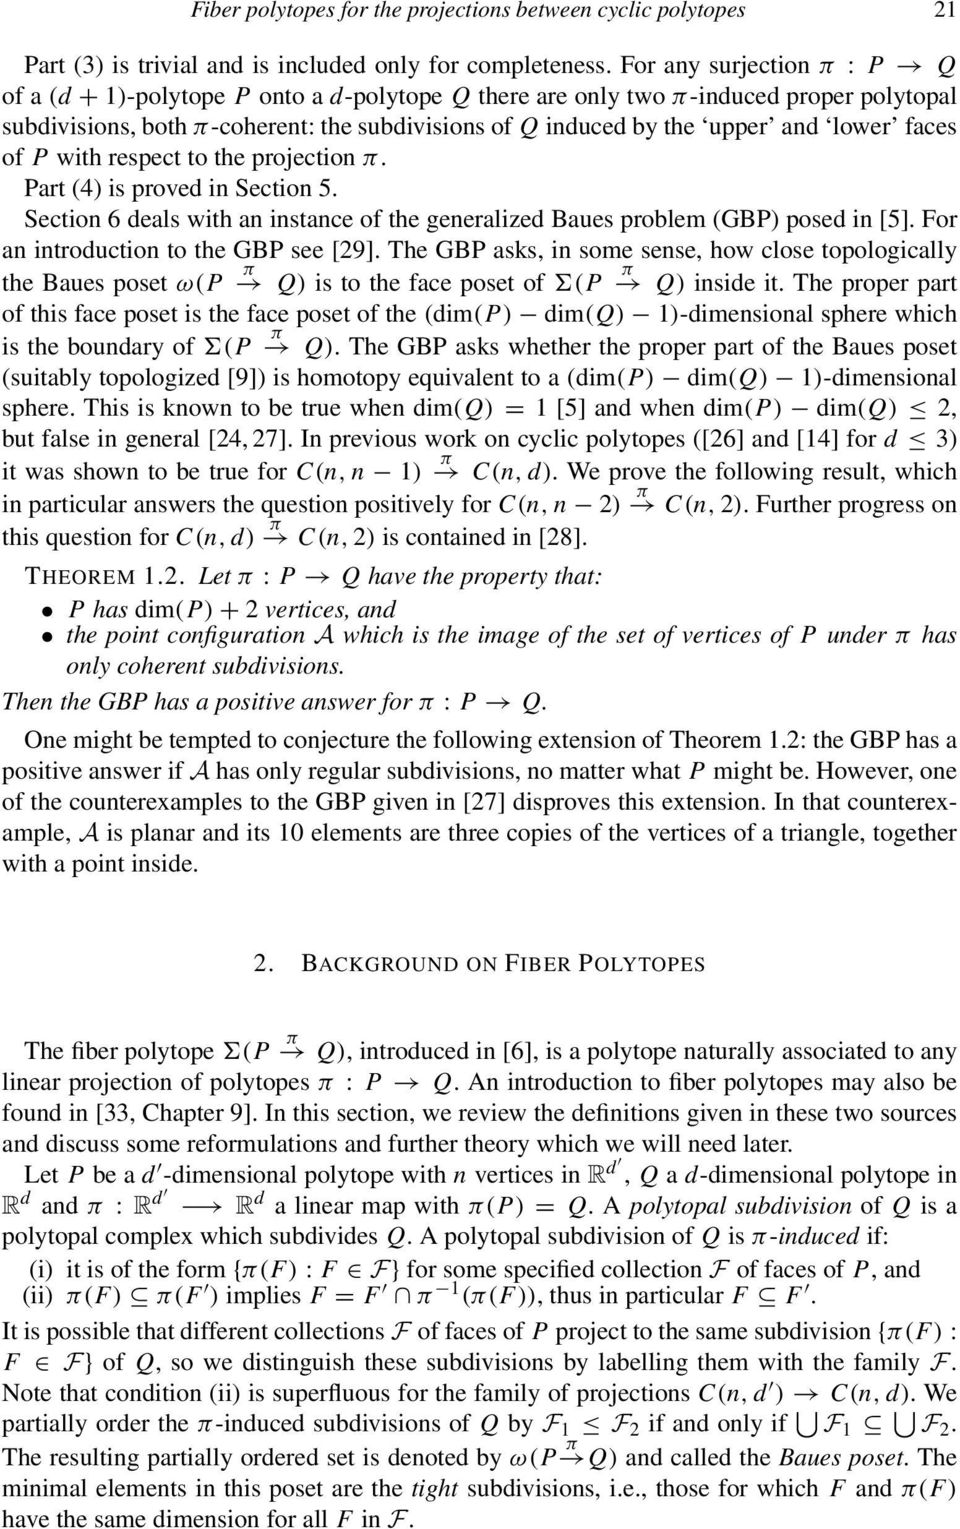 lower faces of P with respect to the projection π. Part (4) is proved in Section 5. Section 6 deals with an instance of the generalized Baues problem (GBP) posed in [5].